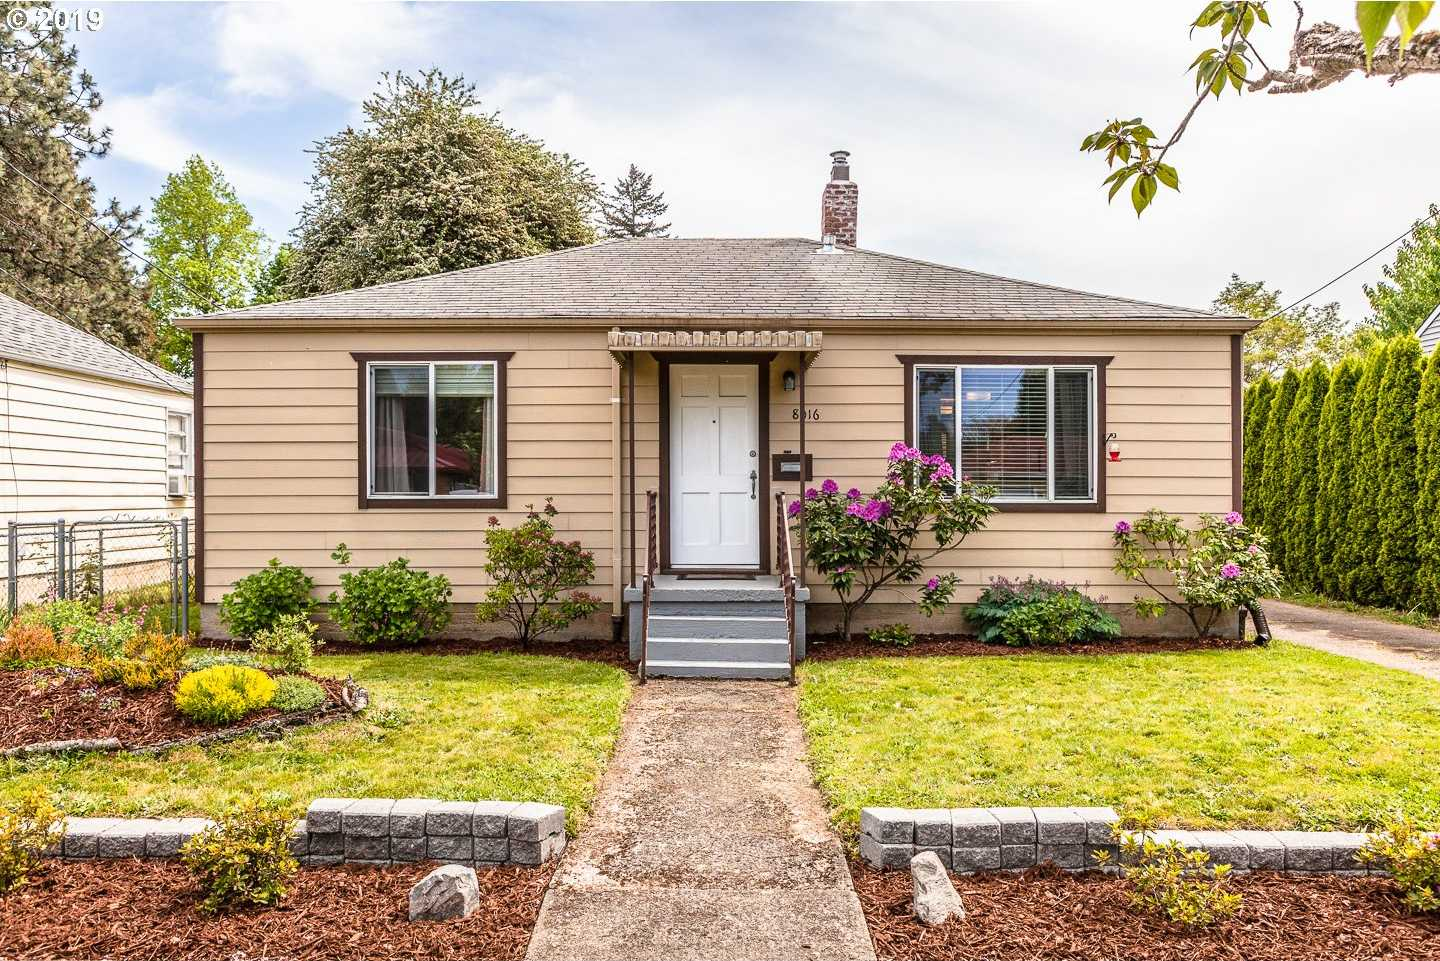 $339,000 - 2Br/1Ba -  for Sale in South Tabor, Portland